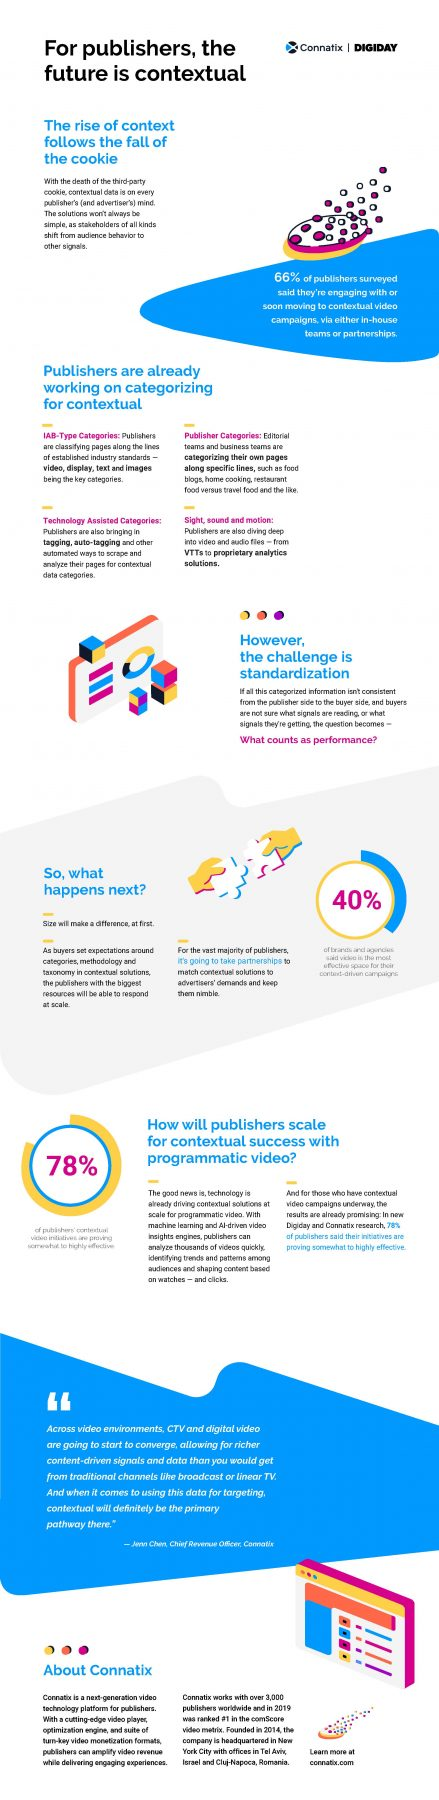 infographic:-for-publishers,-the-future-is-contextual